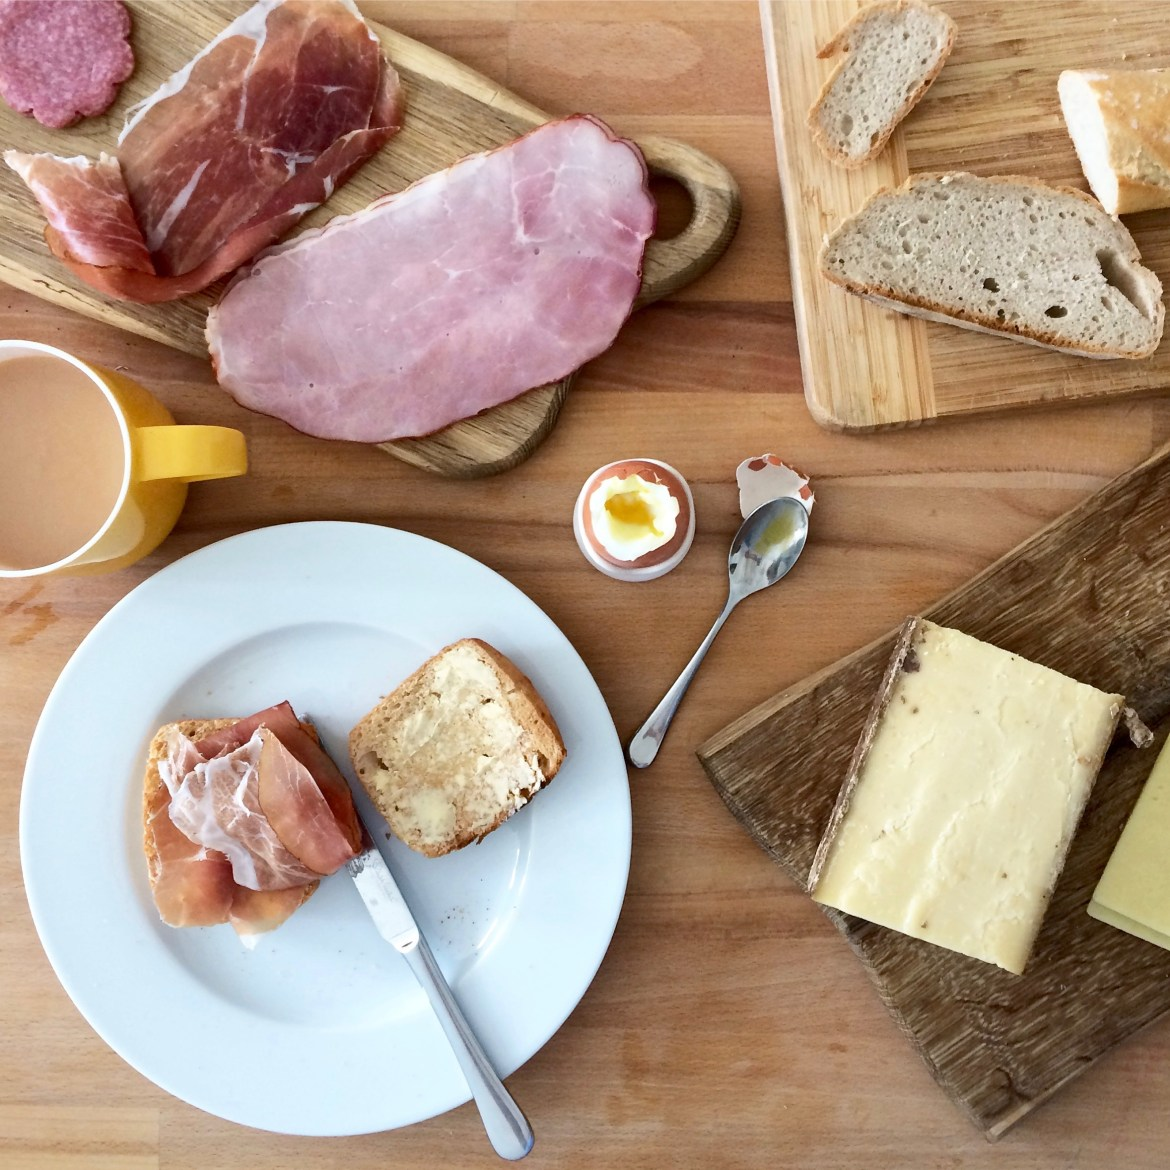 Flatlay of a German breakfast with meats, cheeses, bread and a boiled egg